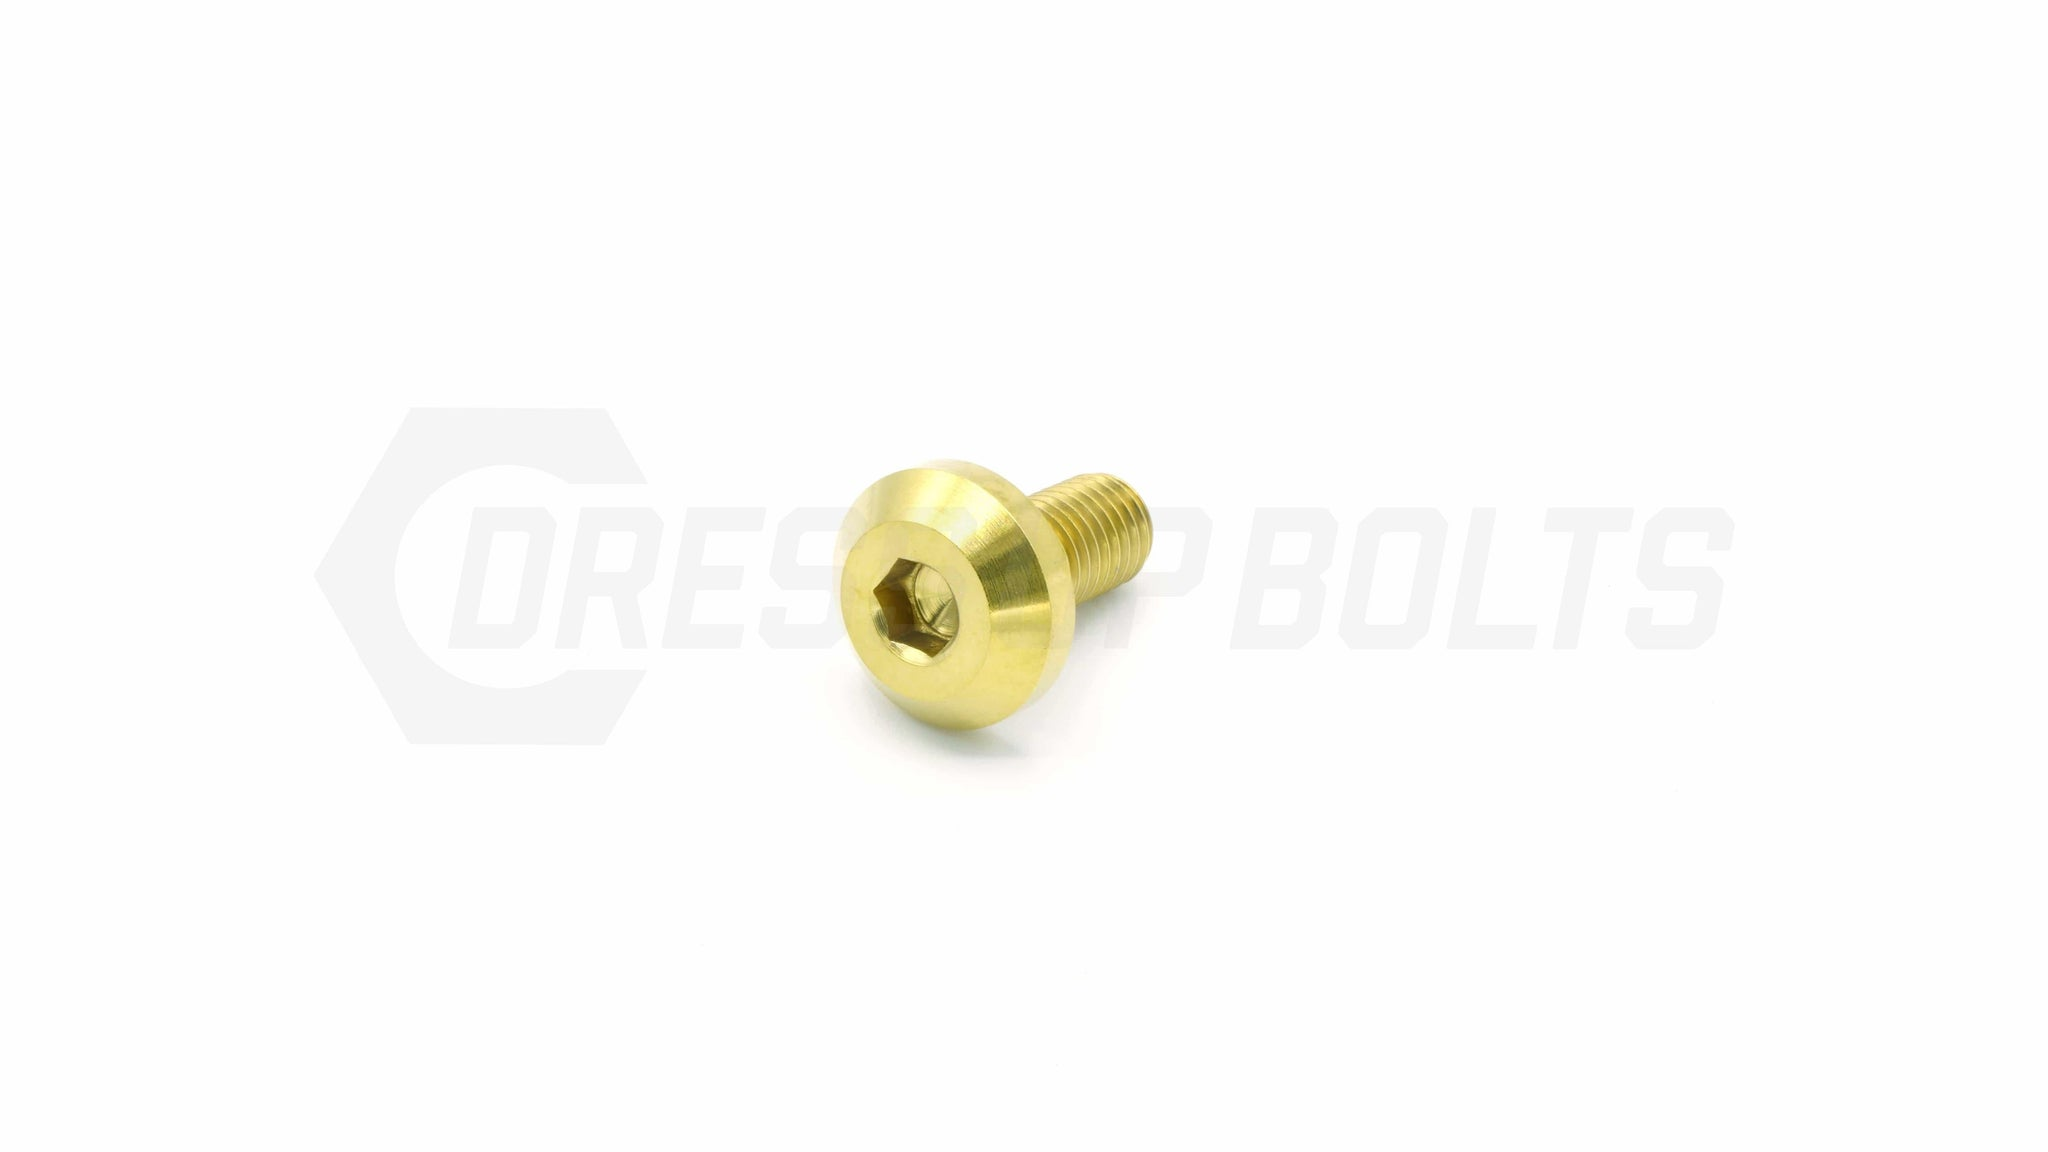 M7 x 1.00 x 15mm Titanium Motor Head Bolt by Dress Up Bolts - DressUpBolts.com